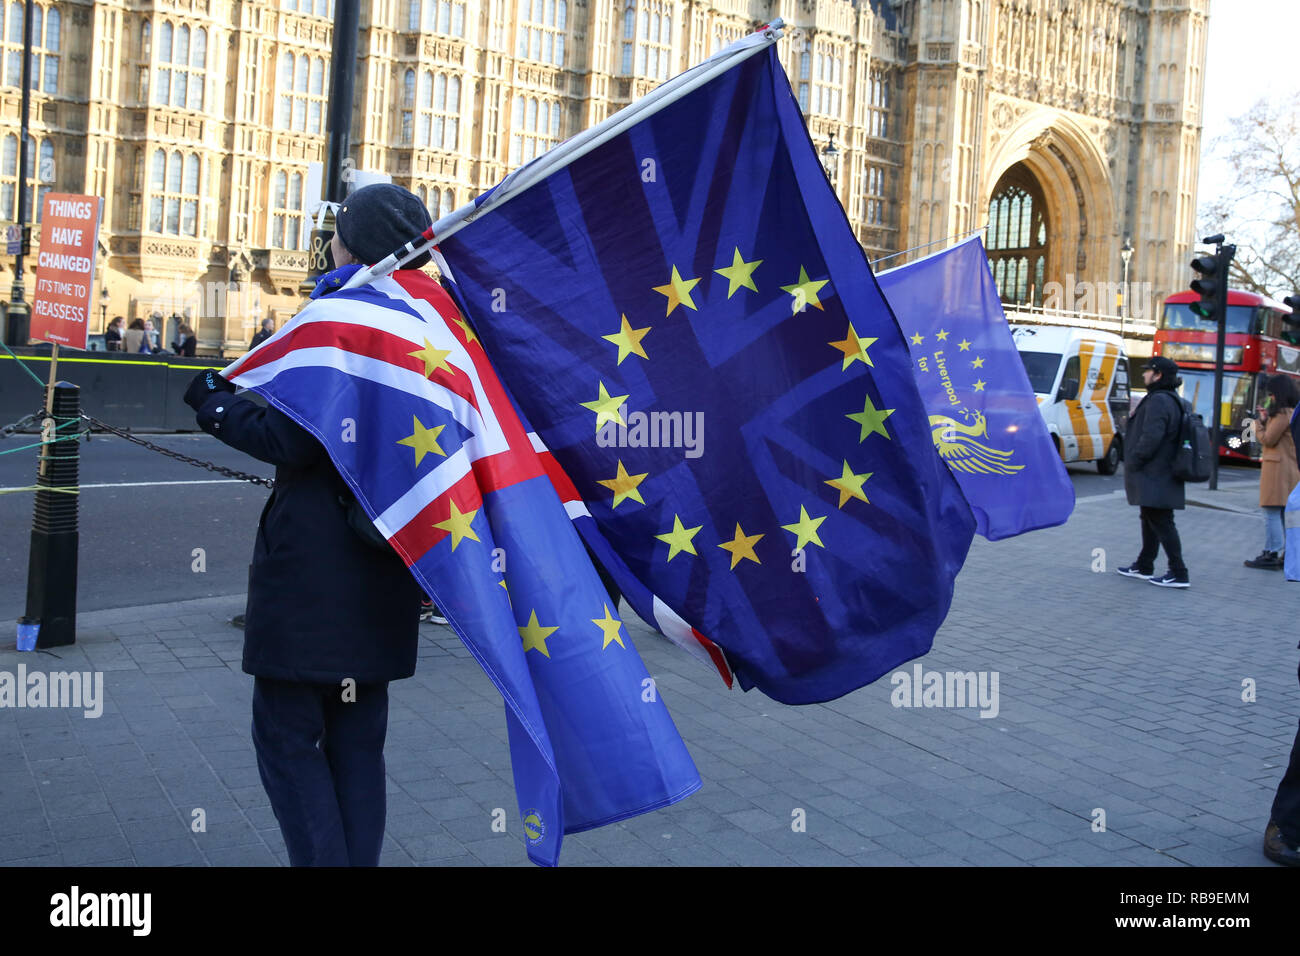 London, UK. 8th Jan, 2019. Anti-Brexit demonstrators seen holding the European Union flag and the union jack flag during the protest.Anti Brexit demonstrators gather outside the British Parliament a week before the MPs to vote on the finalized Brexit deal, MPs will vote on Theresa May's Brexit deal on Tuesday, 15 January. Credit: Dinendra Haria/SOPA Images/ZUMA Wire/Alamy Live News - Stock Image